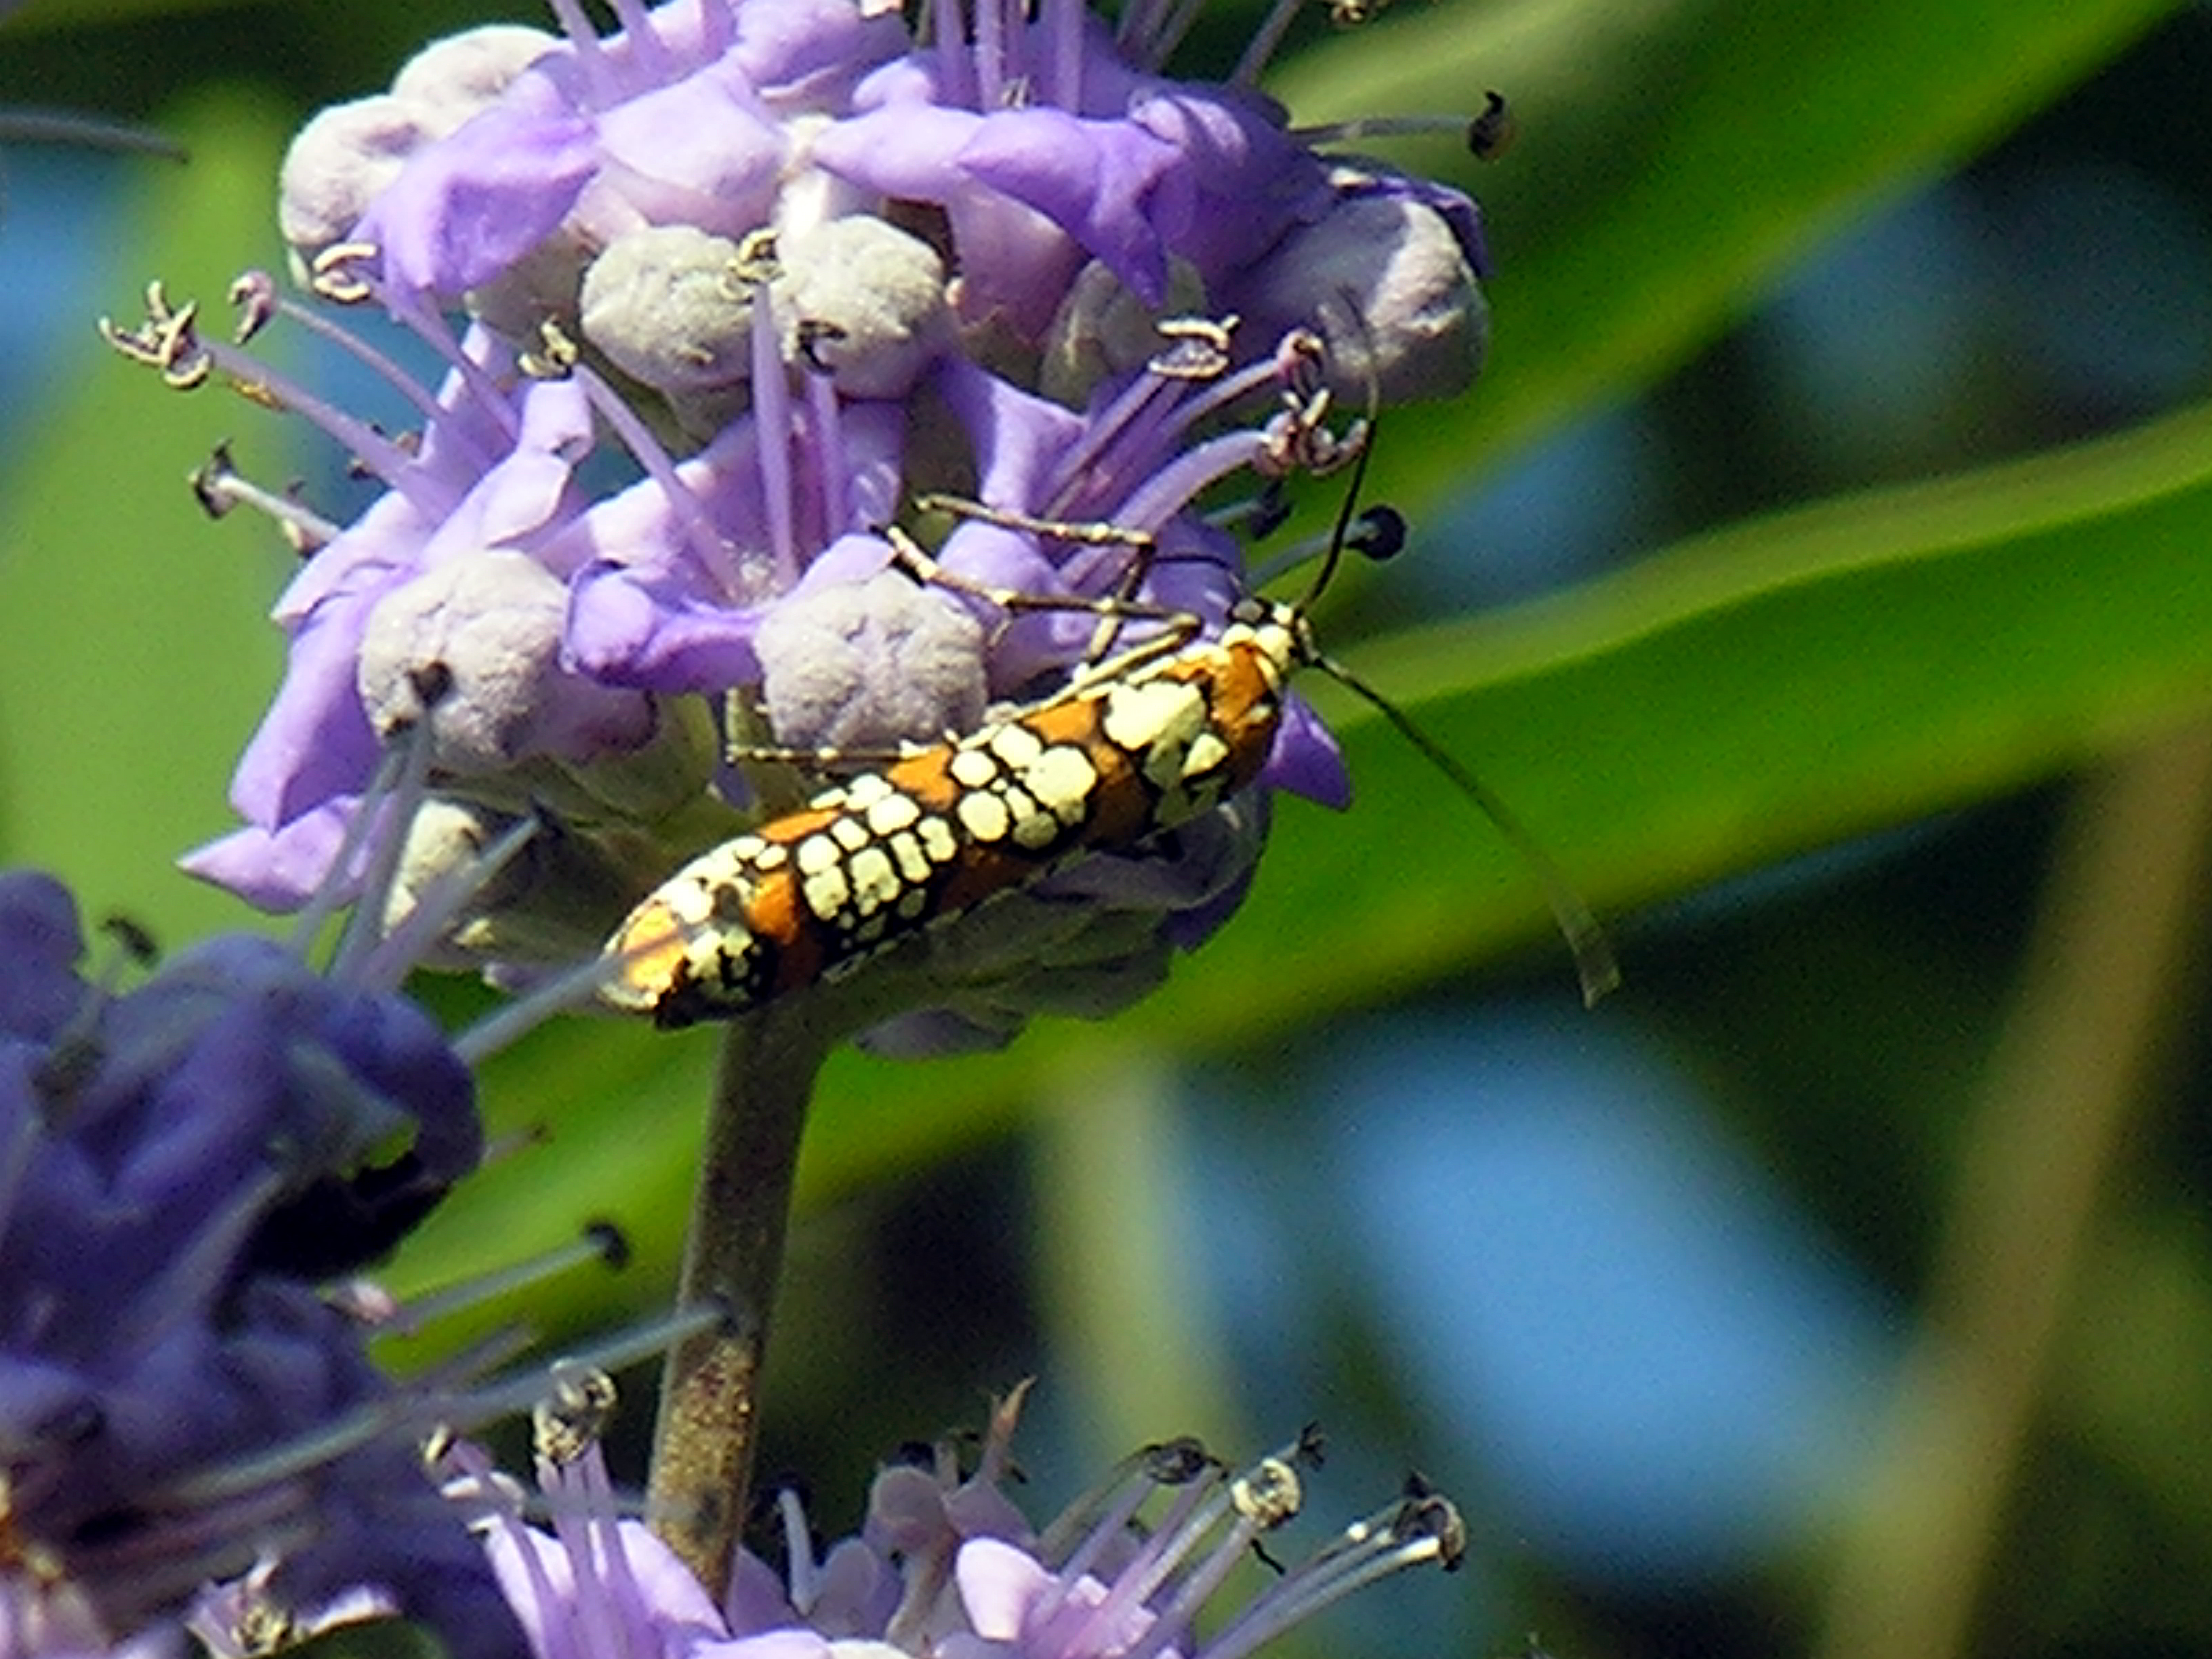 Worksheet Butterfly Beetle filebeetle on butterfly bush 31 may 05 17191641 jpg wikimedia jpg